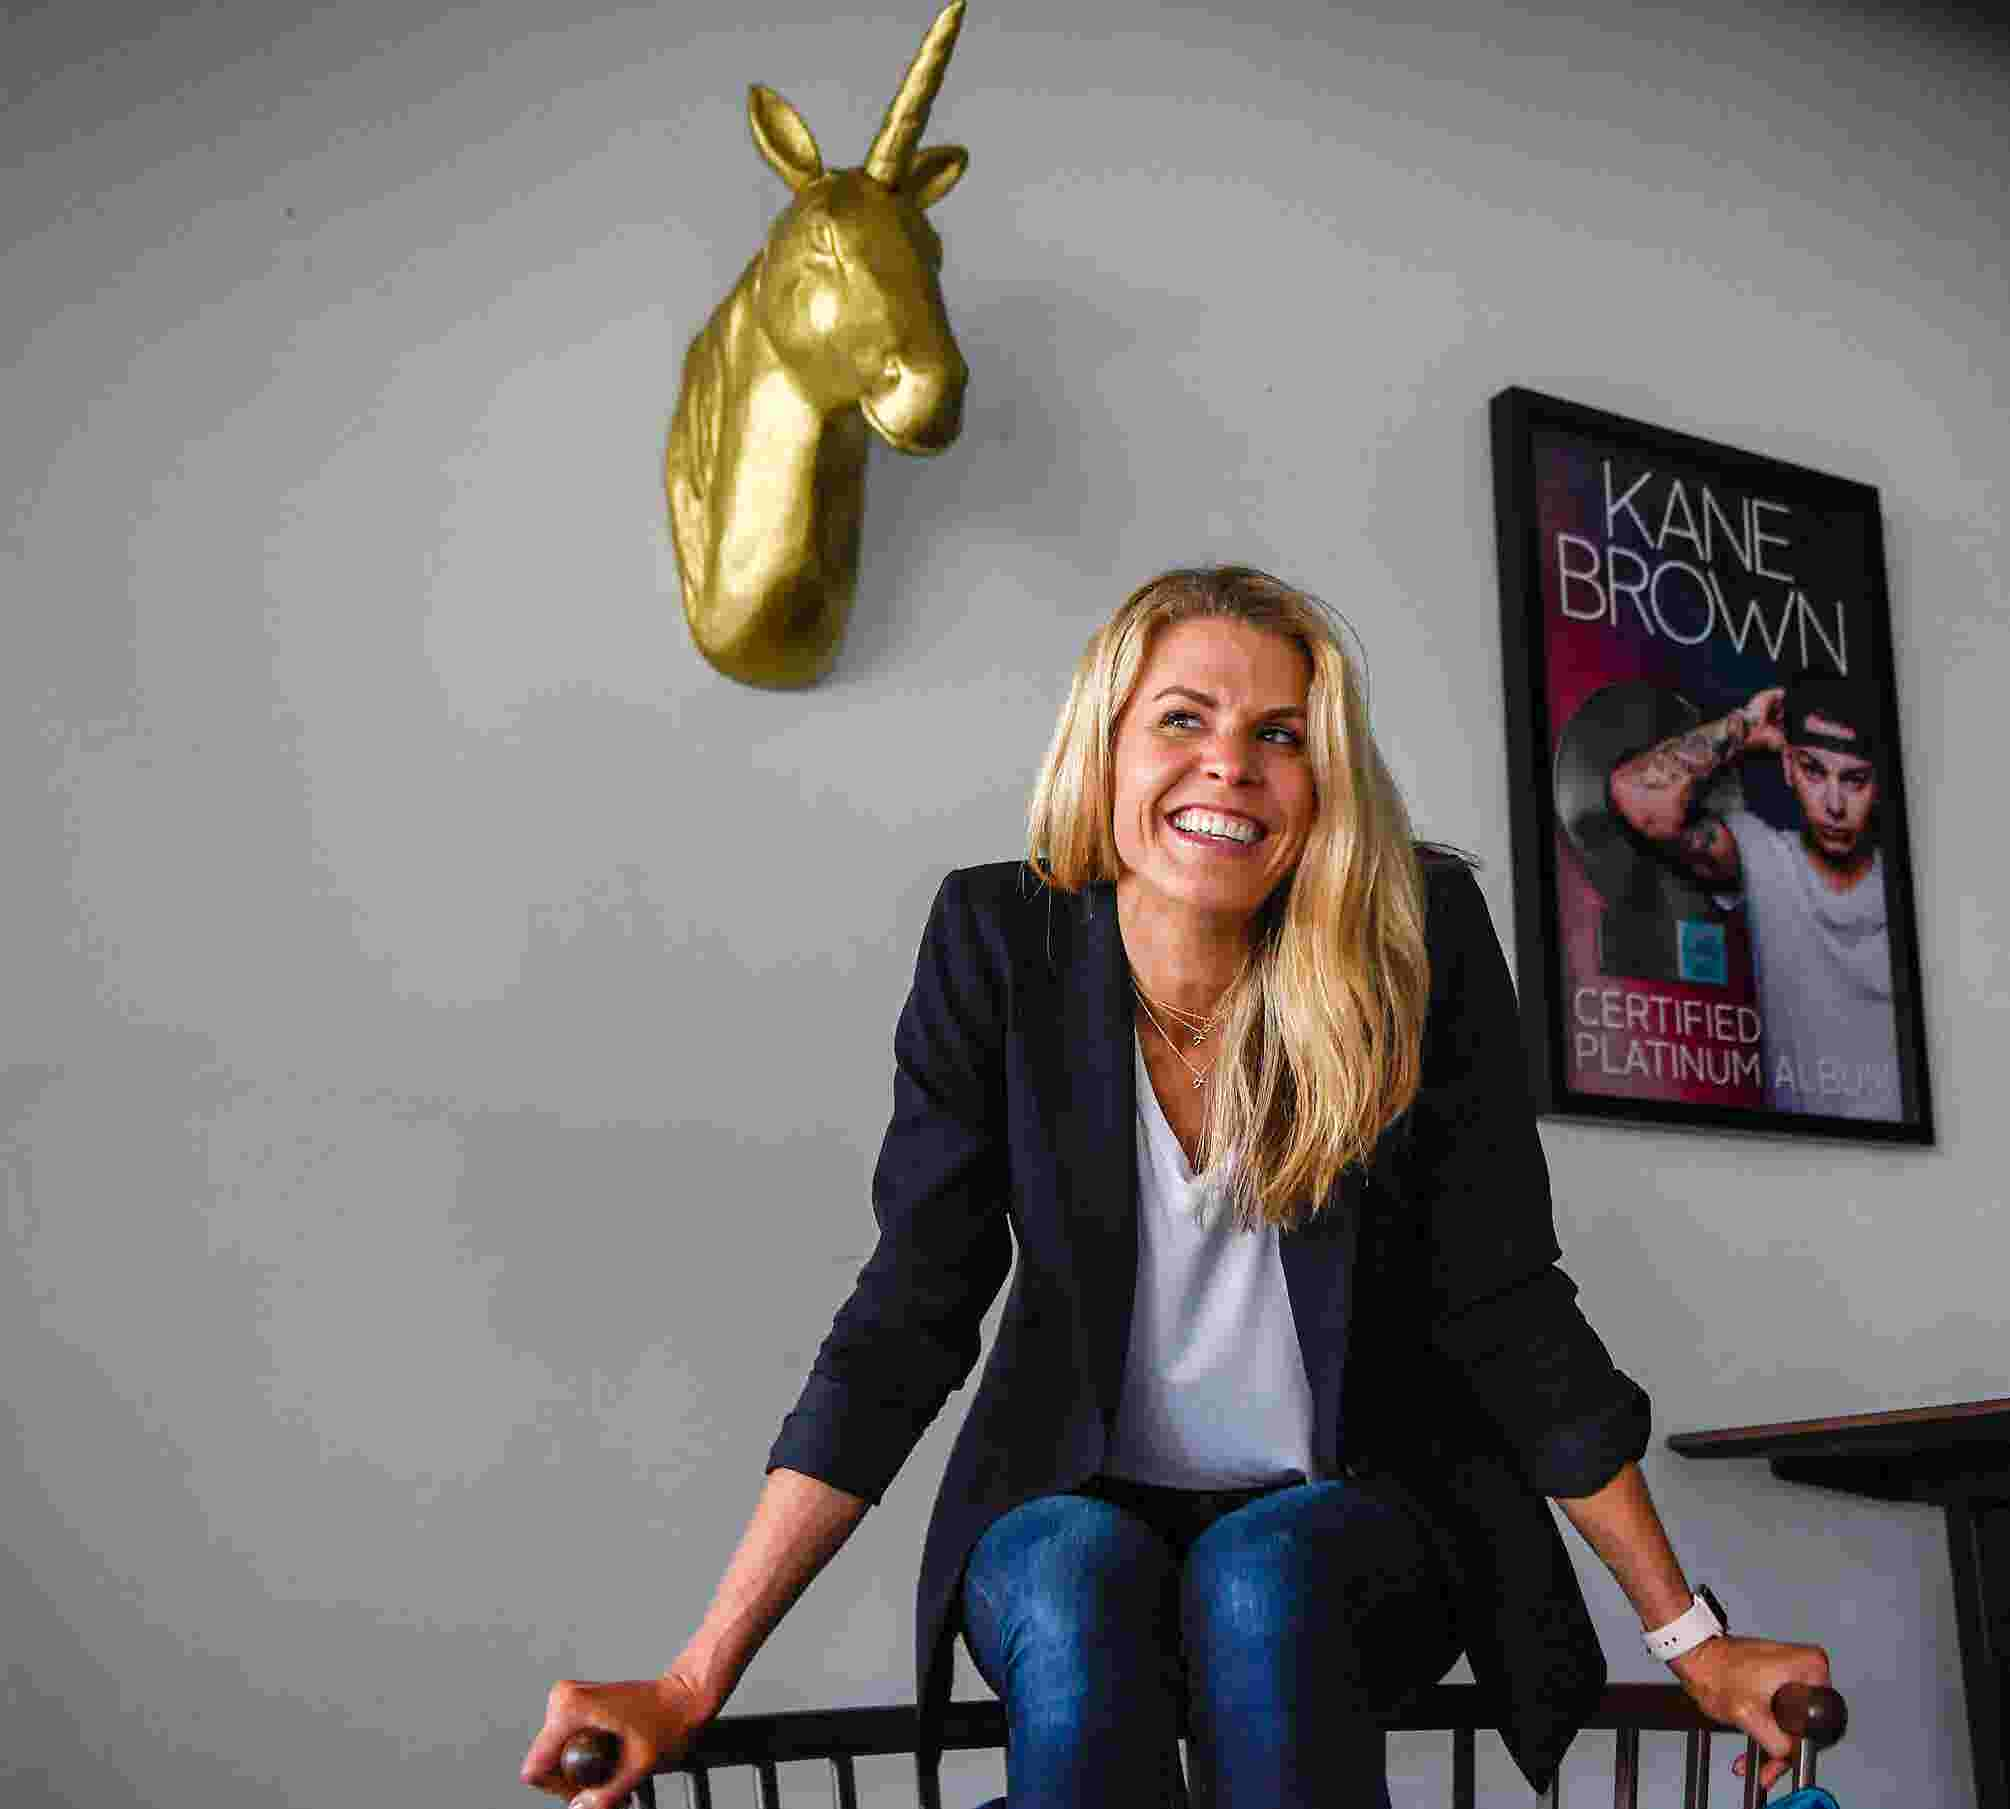 Martha Earls, manager for Kane Brown, lives out country music dream